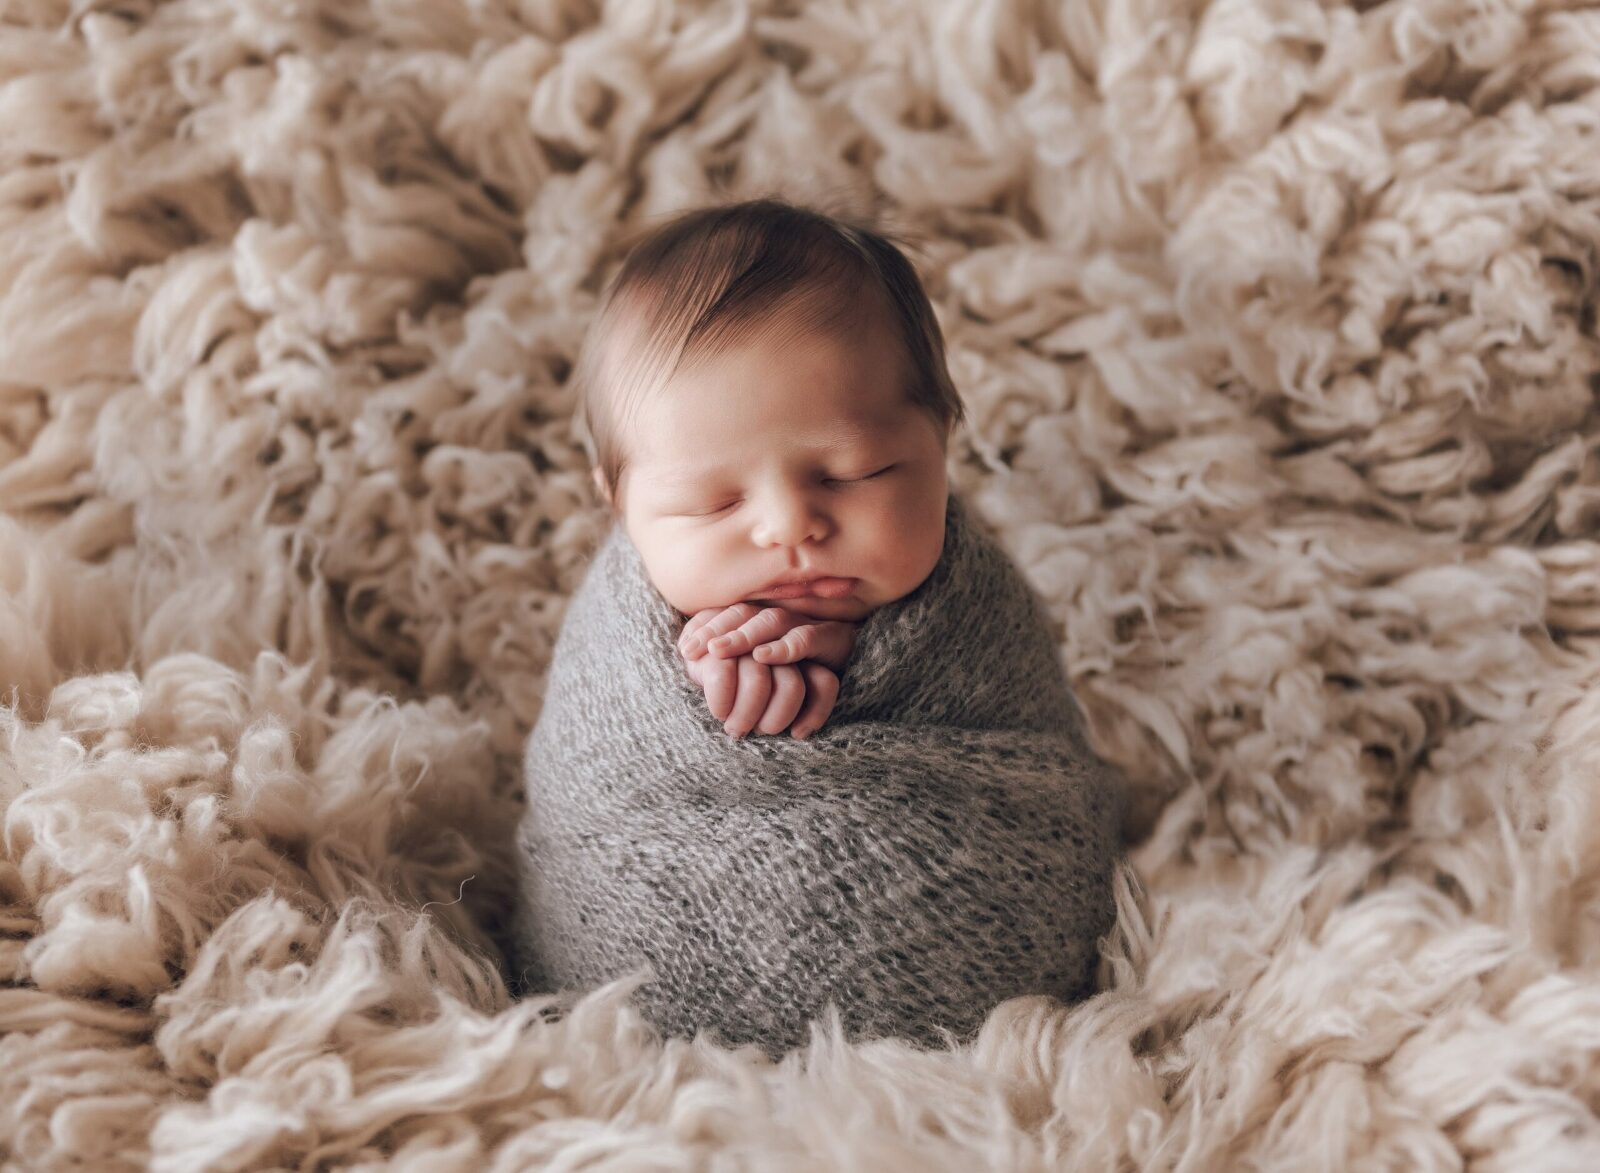 newborn baby boy in potato sack pose on flokati